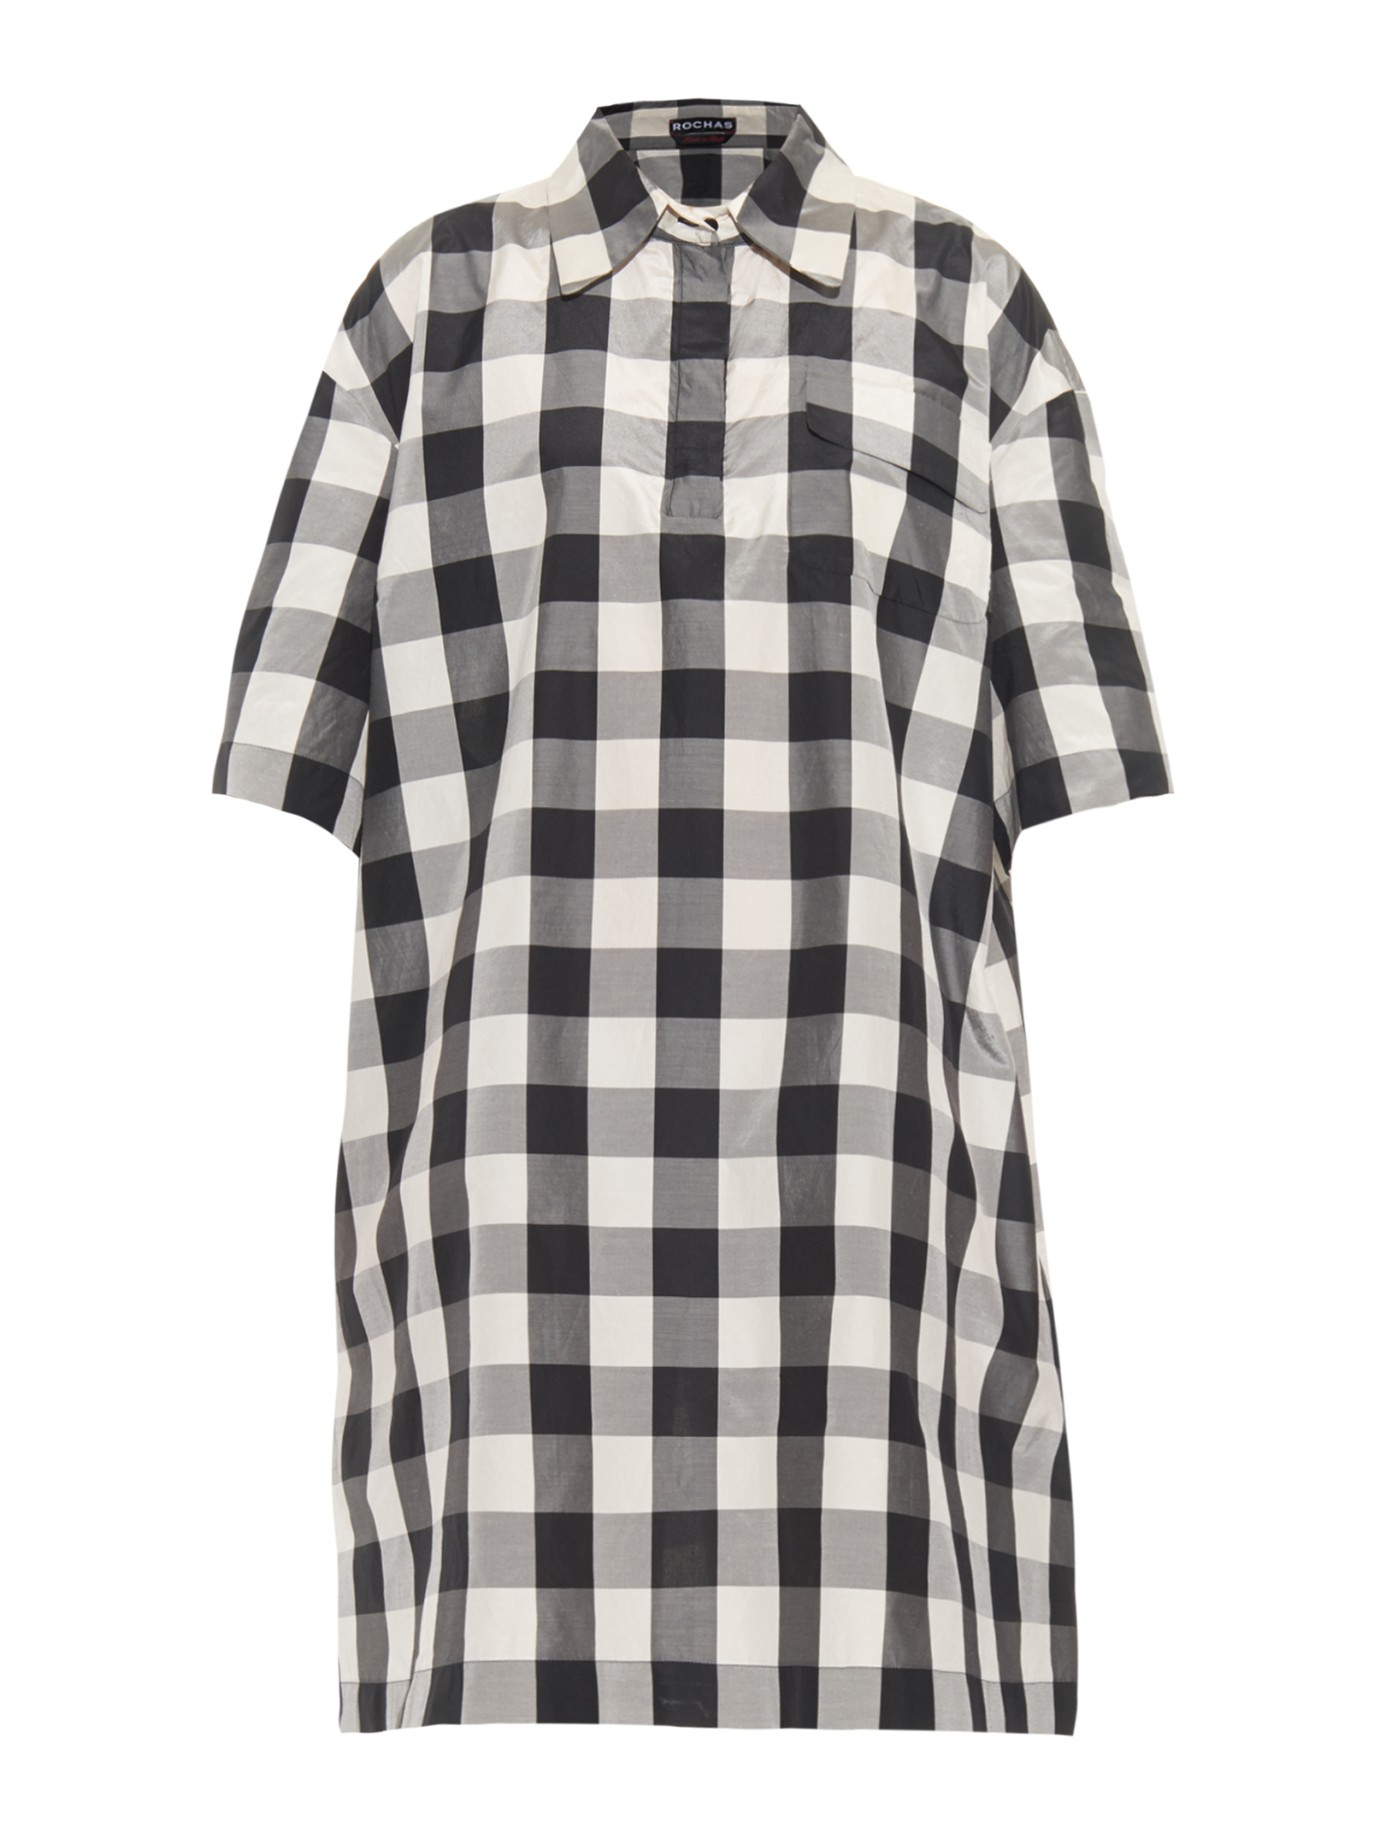 Rochas checked shirt dress in black lyst for Black and white checker shirt